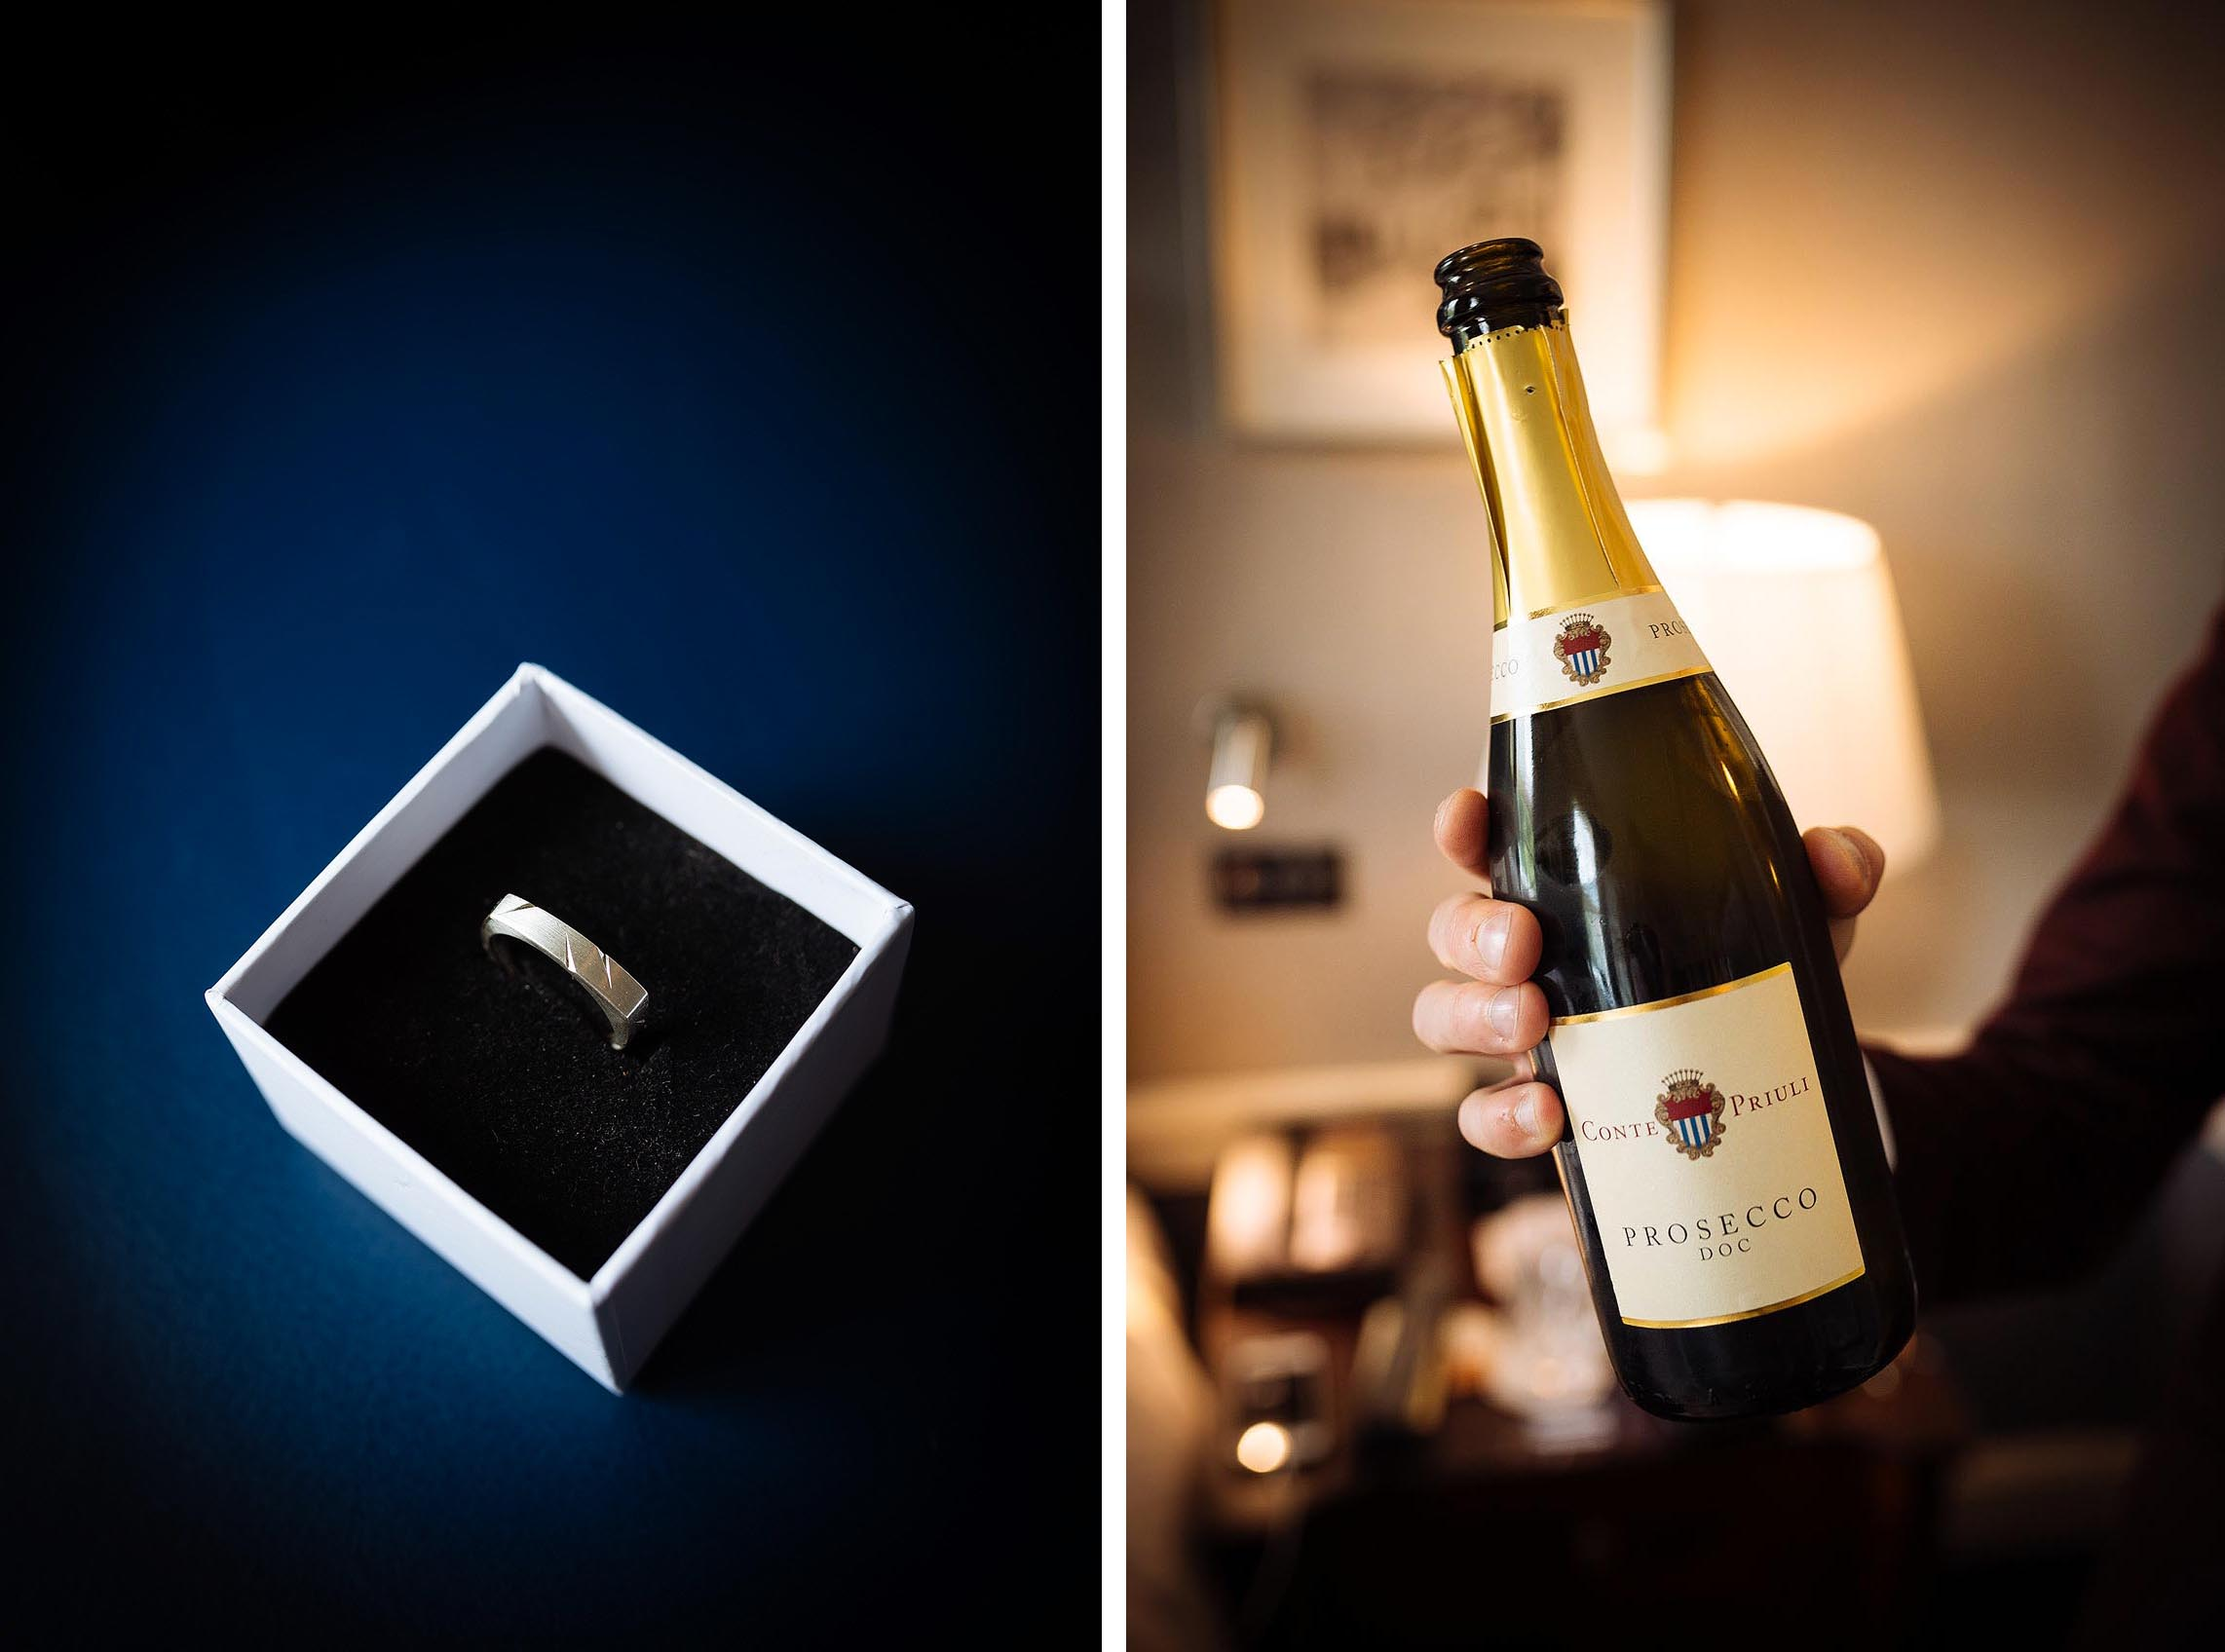 wedding-details-ring-box-prosecco-dublin-ireland-02